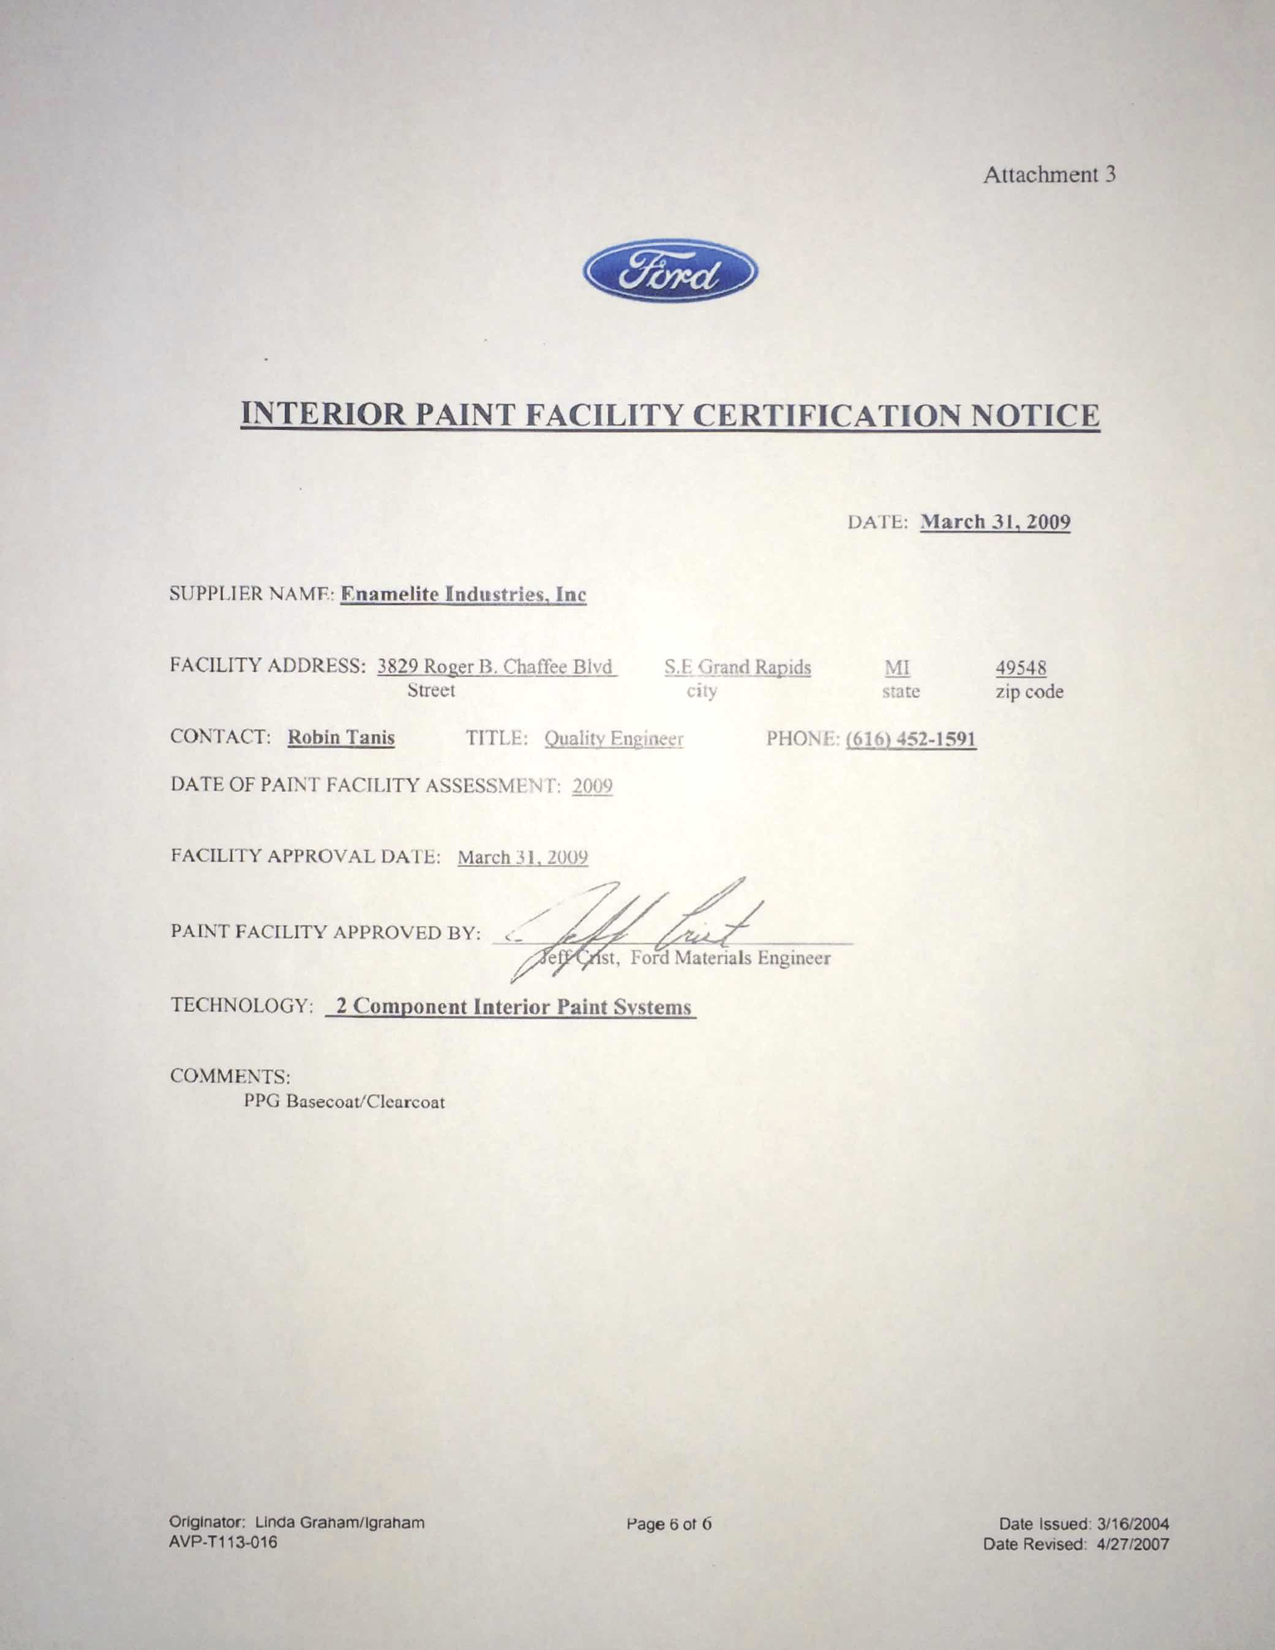 Ford Certification.jpg